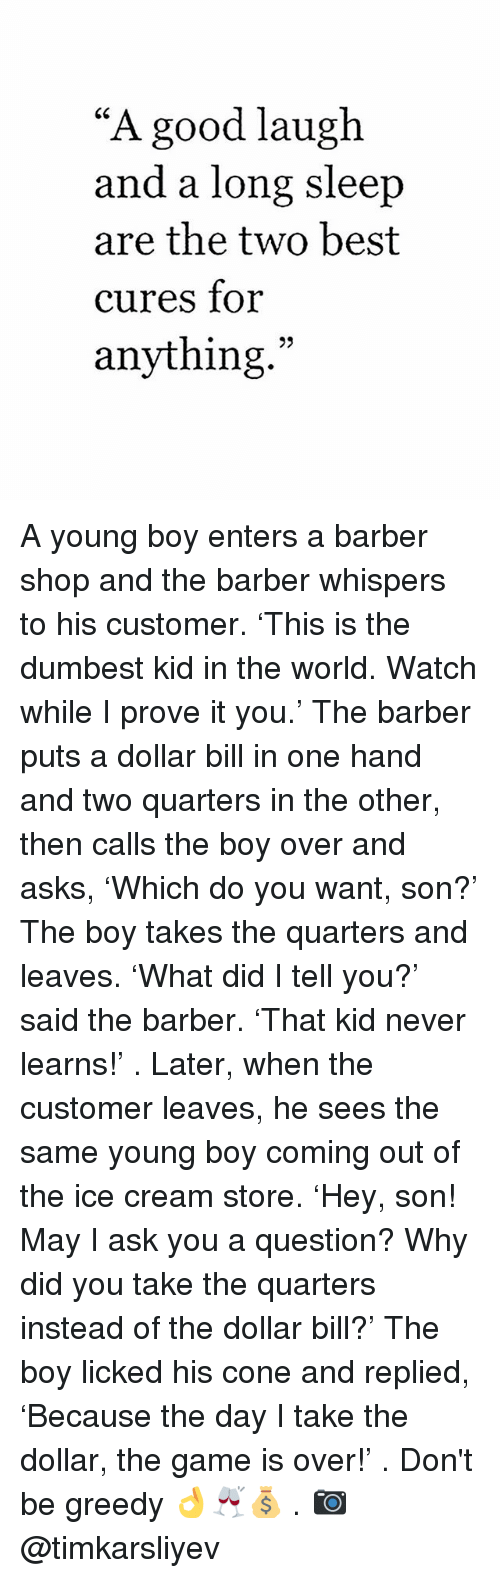 "Memes, 🤖, and Ask: ""A good laugh  and a long sleep  are the two best  cures for  anything A young boy enters a barber shop and the barber whispers to his customer. 'This is the dumbest kid in the world. Watch while I prove it you.' The barber puts a dollar bill in one hand and two quarters in the other, then calls the boy over and asks, 'Which do you want, son?' The boy takes the quarters and leaves. 'What did I tell you?' said the barber. 'That kid never learns!' . Later, when the customer leaves, he sees the same young boy coming out of the ice cream store. 'Hey, son! May I ask you a question? Why did you take the quarters instead of the dollar bill?' The boy licked his cone and replied, 'Because the day I take the dollar, the game is over!' . Don't be greedy 👌🥂💰 . 📷 @timkarsliyev"